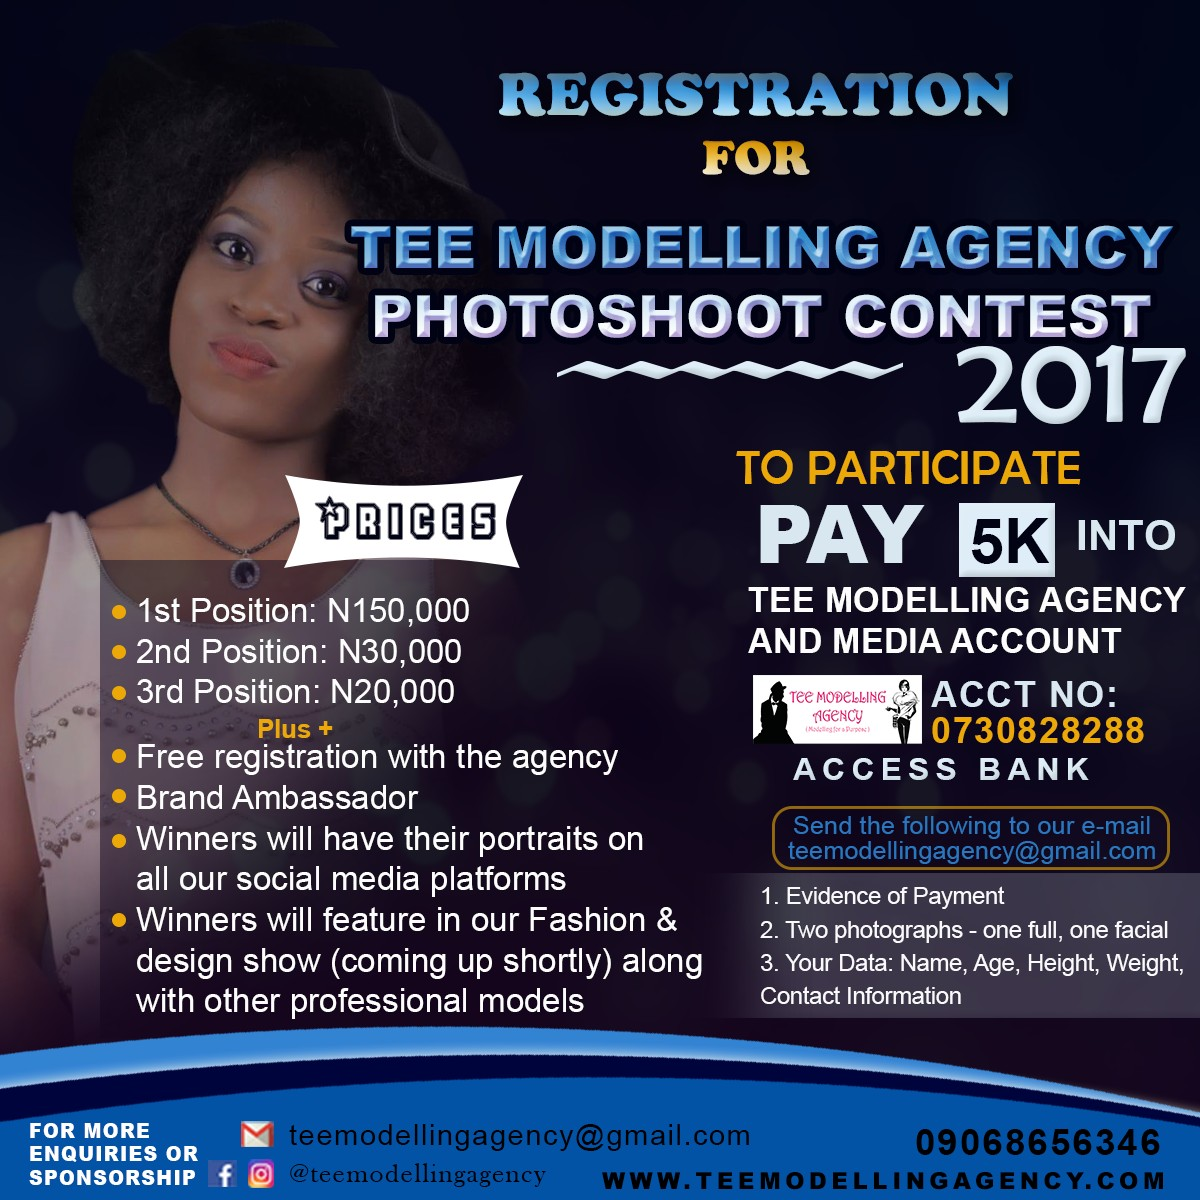 TEE MODELLING AGENCY 2017 PHOTOSHOOT CONTEST FORM NOW ON.